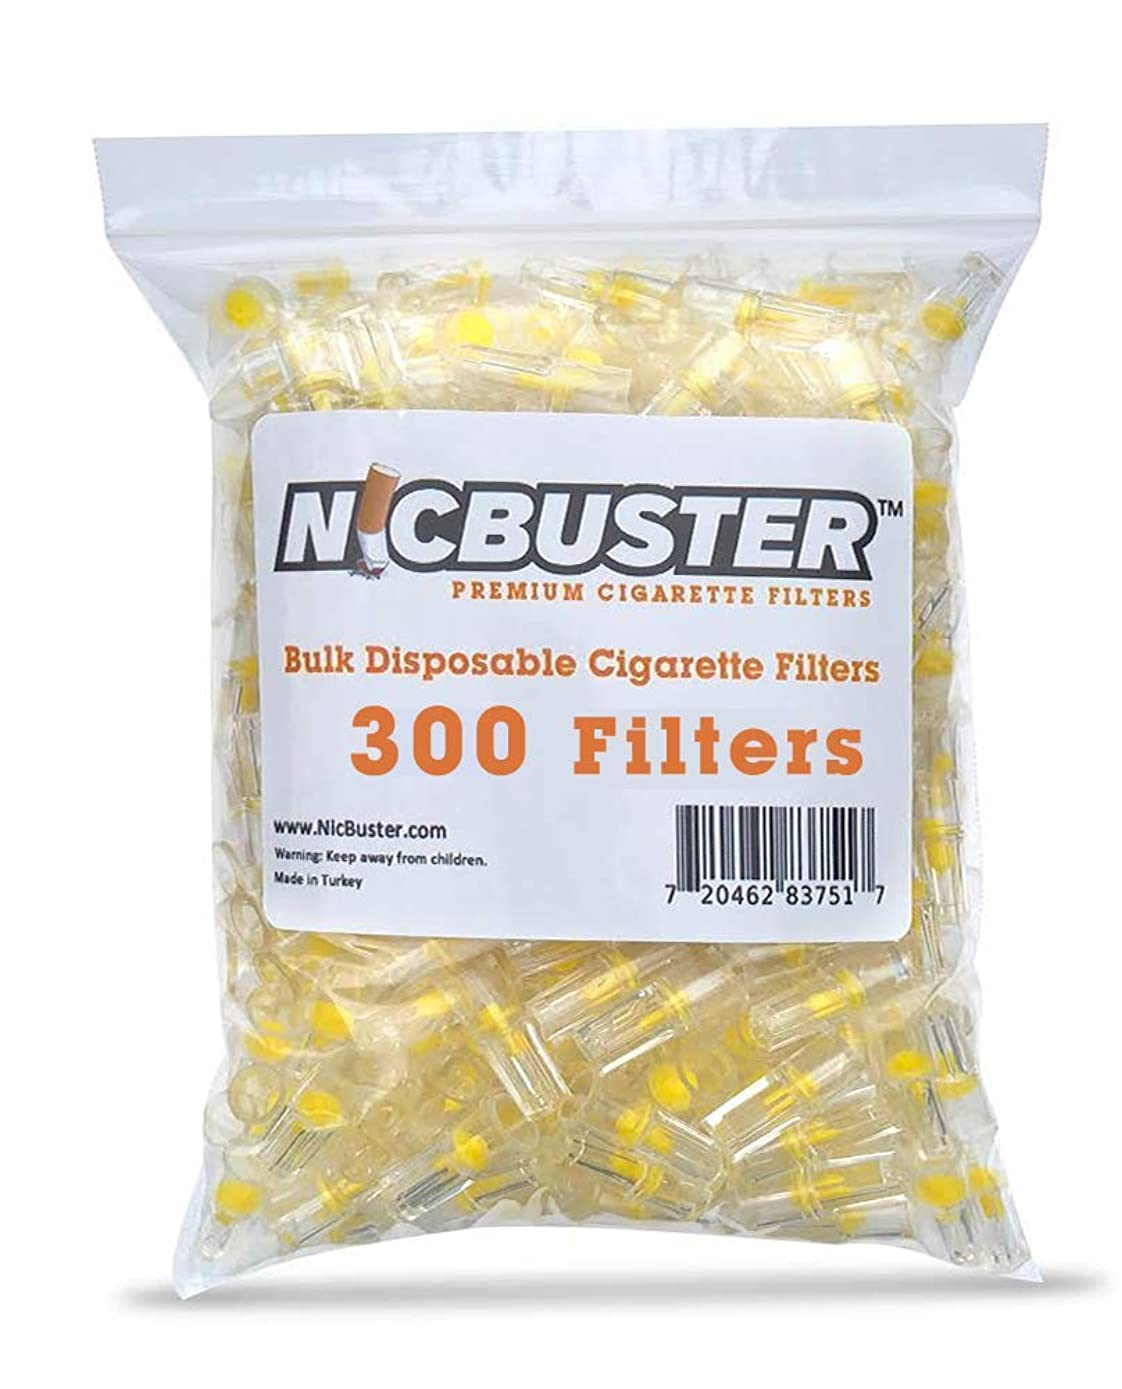 NICBUSTER Disposable Cigarette Filters Bulk Economy Pack, 300 Filters